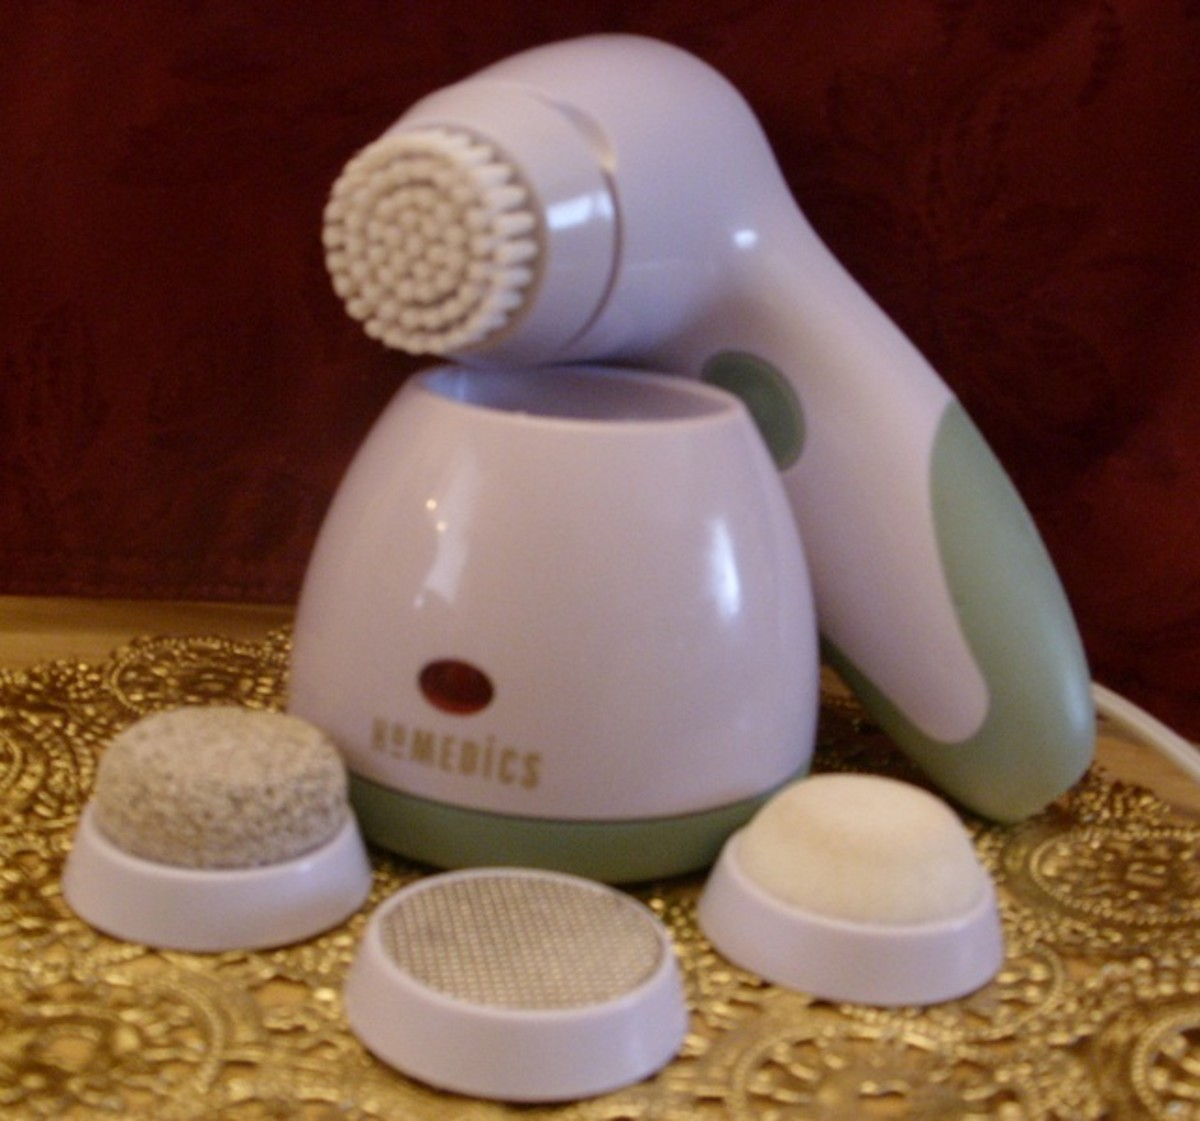 Homedics Cordless Pedicure Tool with Four Attachments